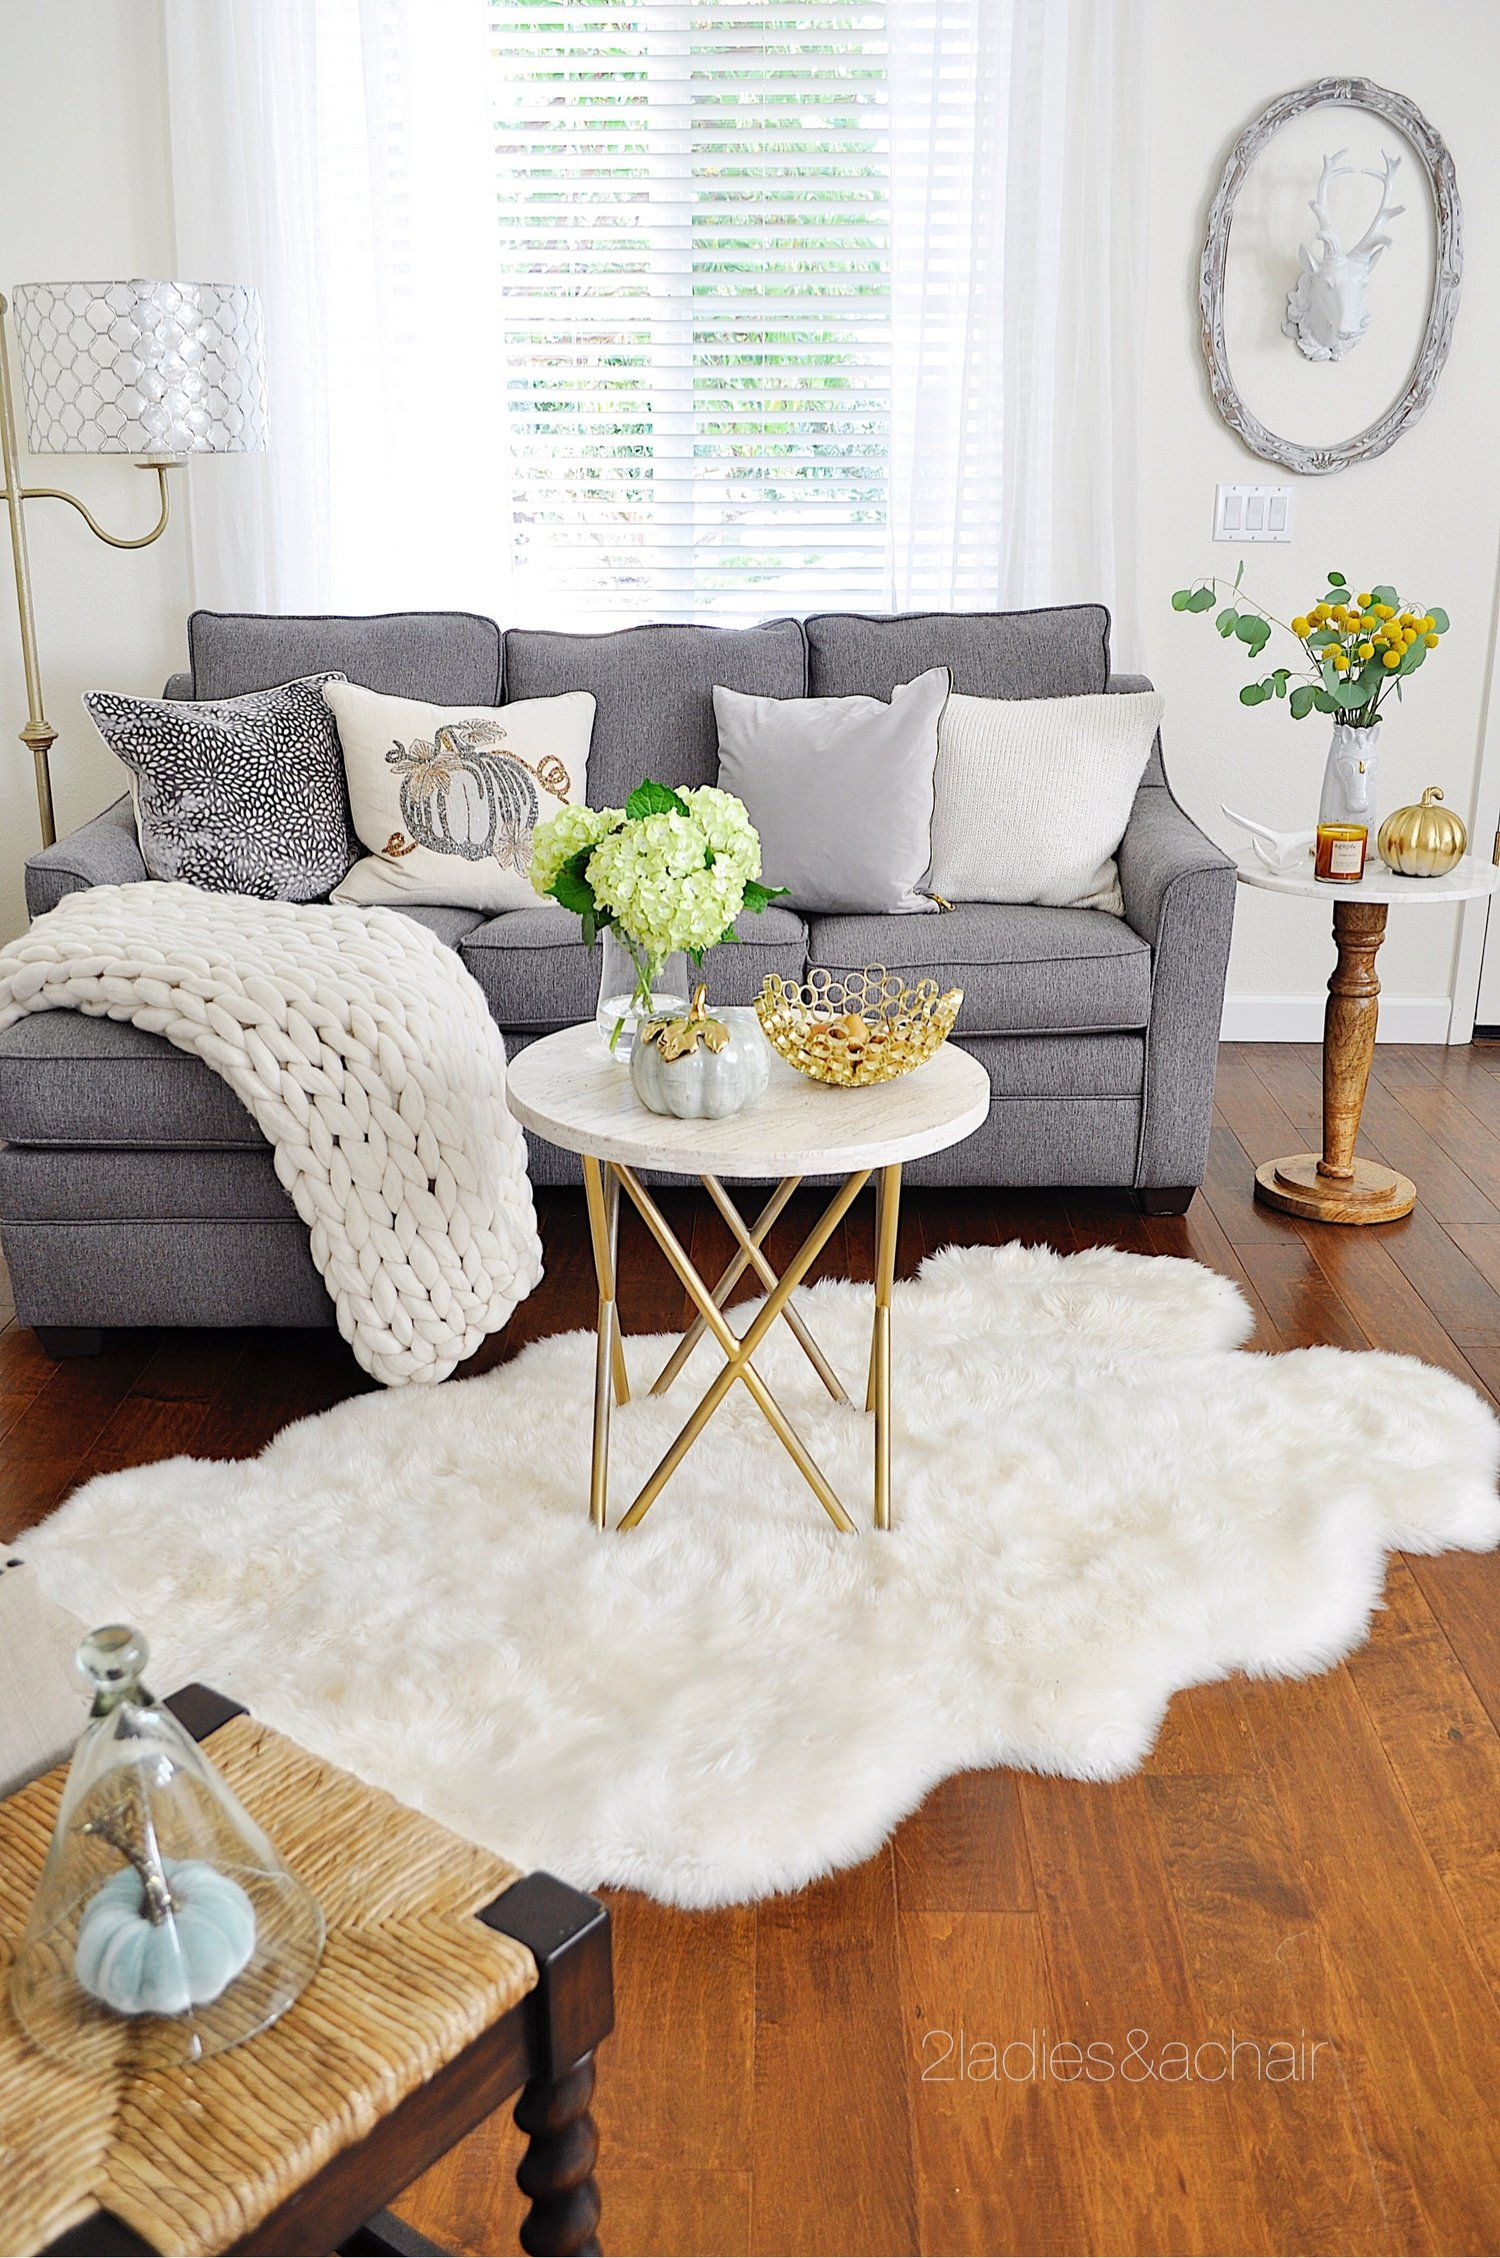 My Neutral Palette Was Well Established With White Walls And A Grey Sofa For Interest I In Winter Living Room Living Room Decor Neutral Fall Living Room Decor